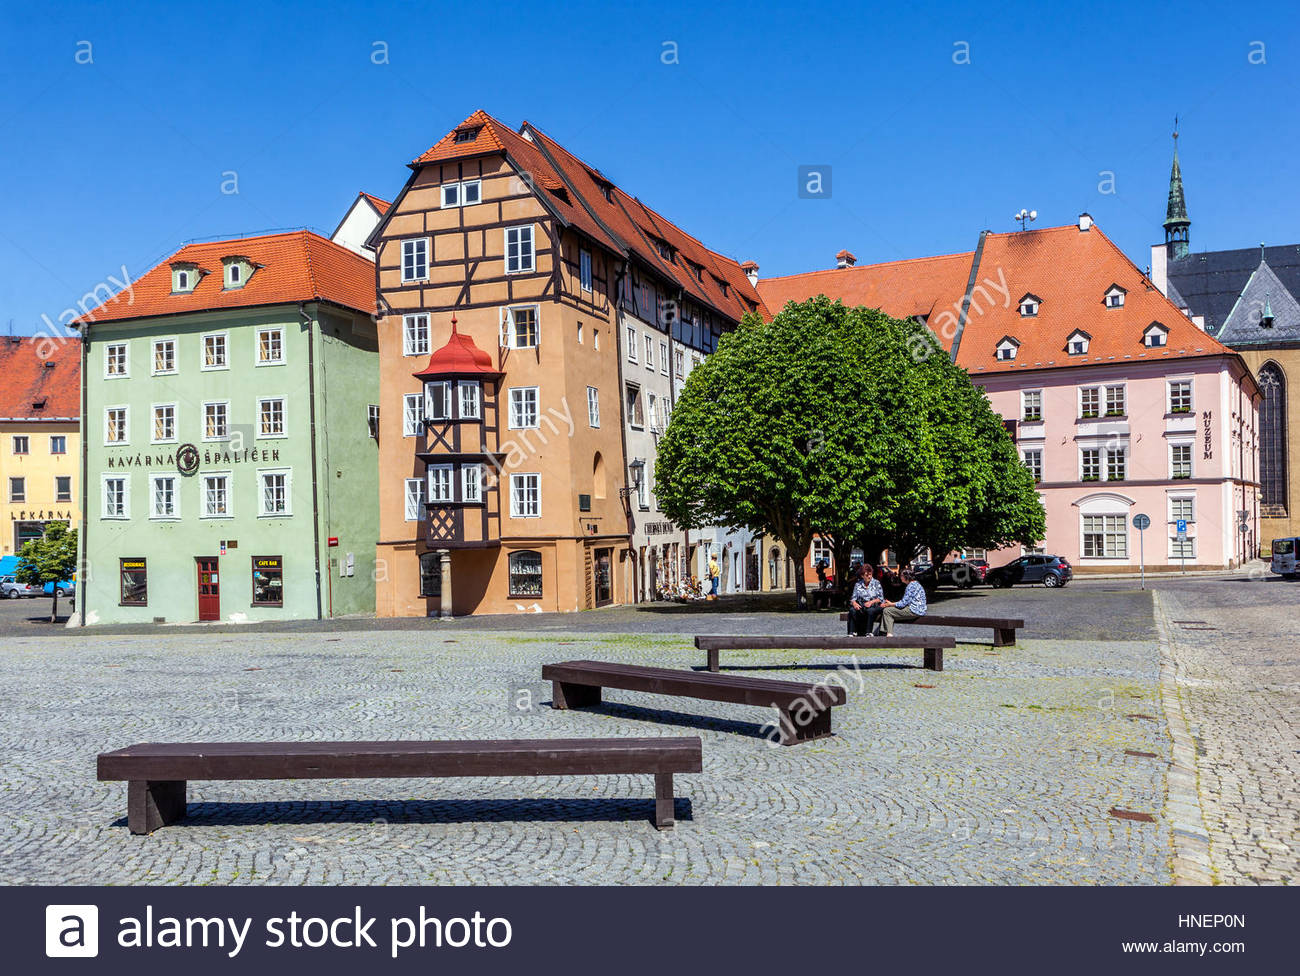 U.S. General George S. Patton Memorial Western Bohemia, Historic old town, Spalicek, Main Square, Cheb, West Bohemia ...